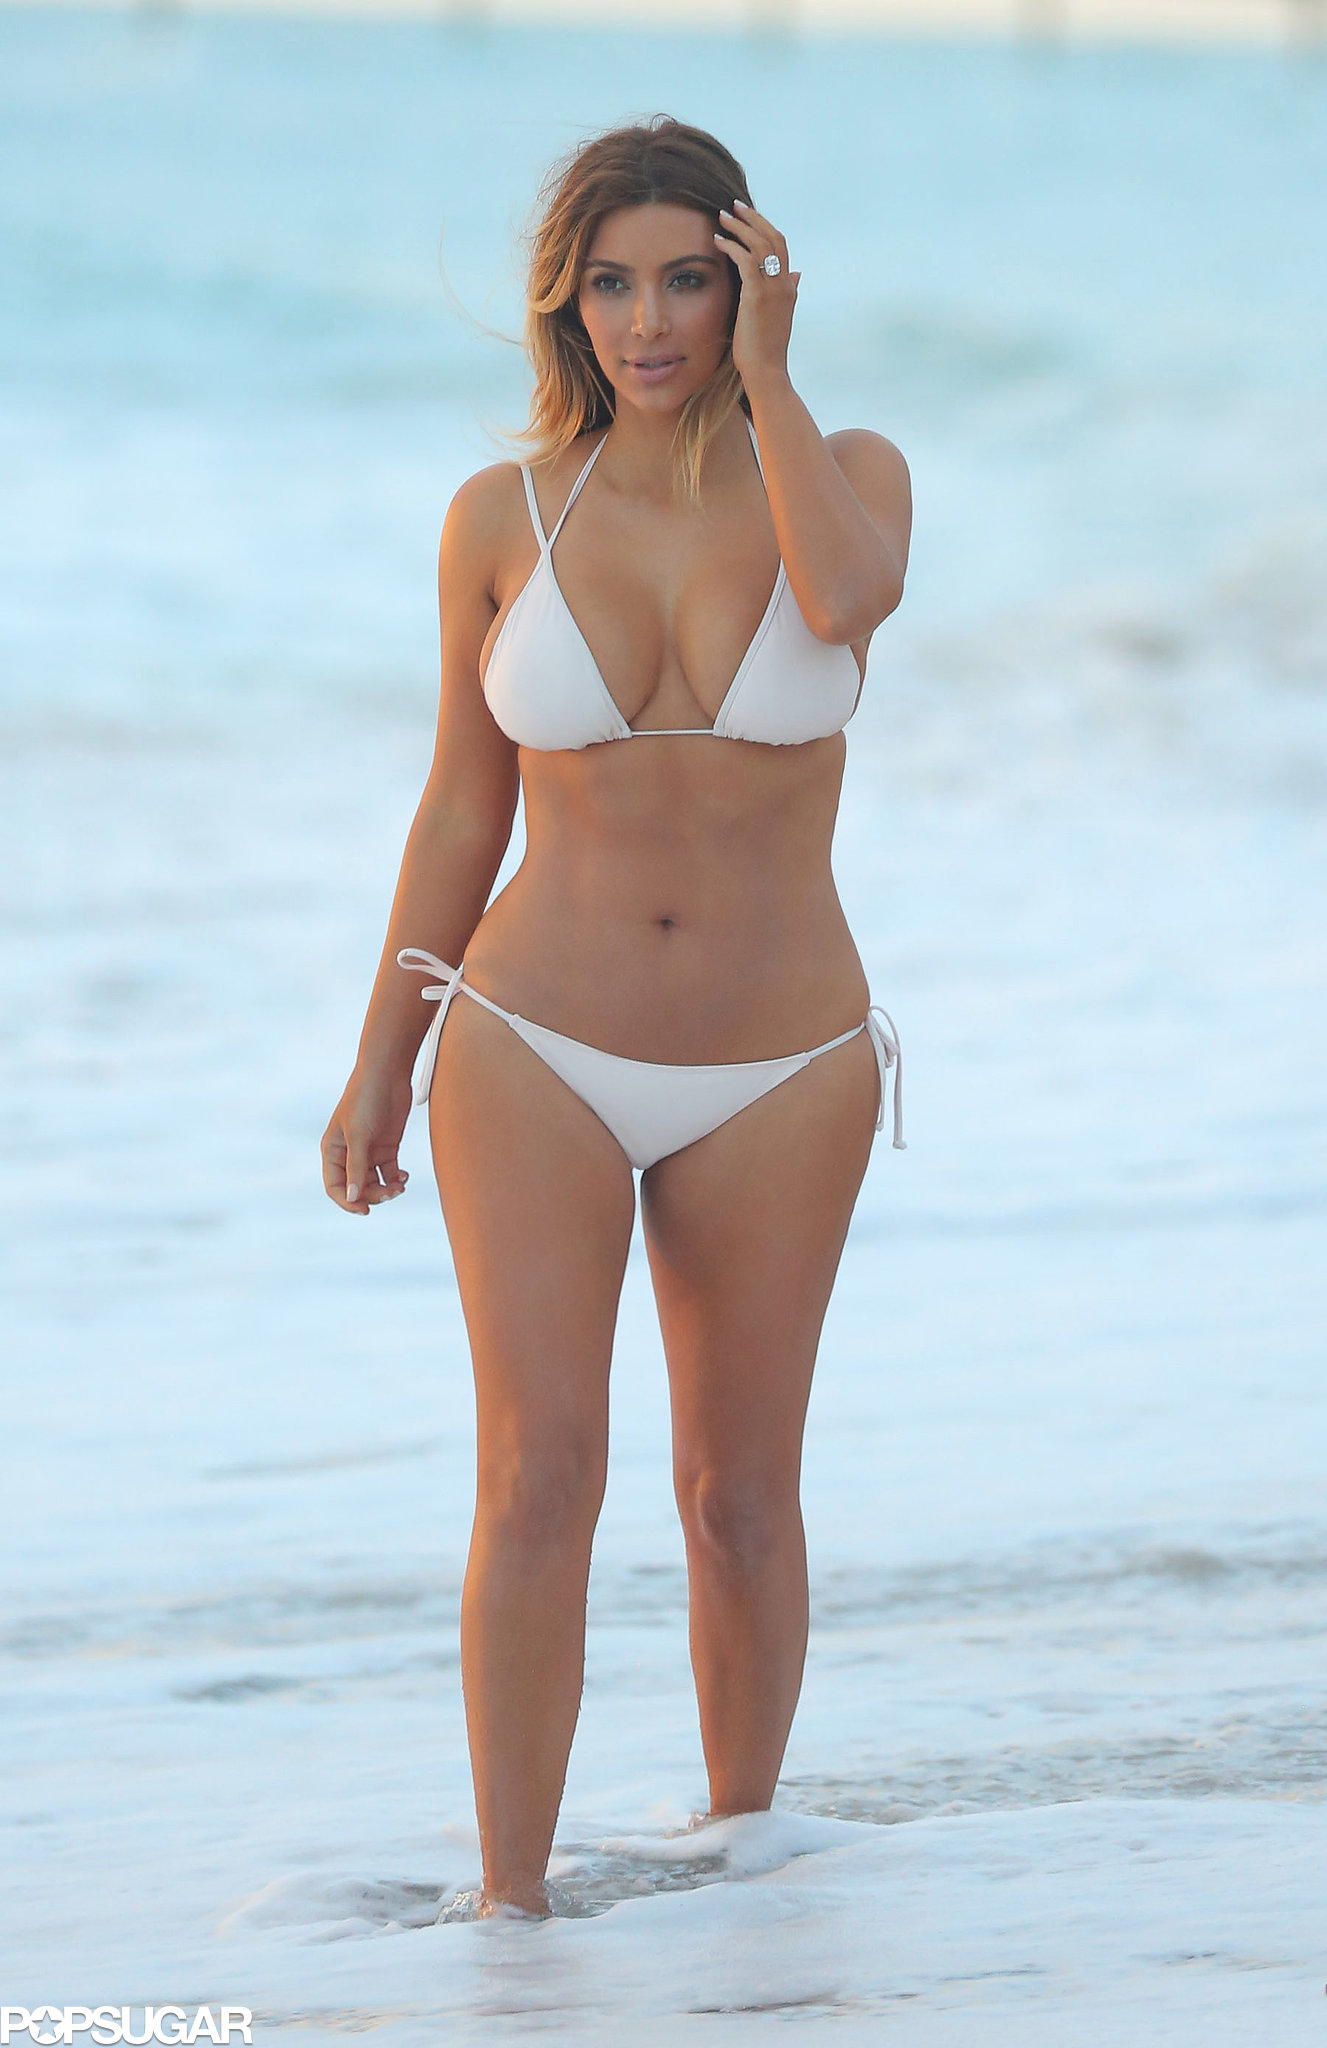 Kim wore a white bikini just six months after giving birth.